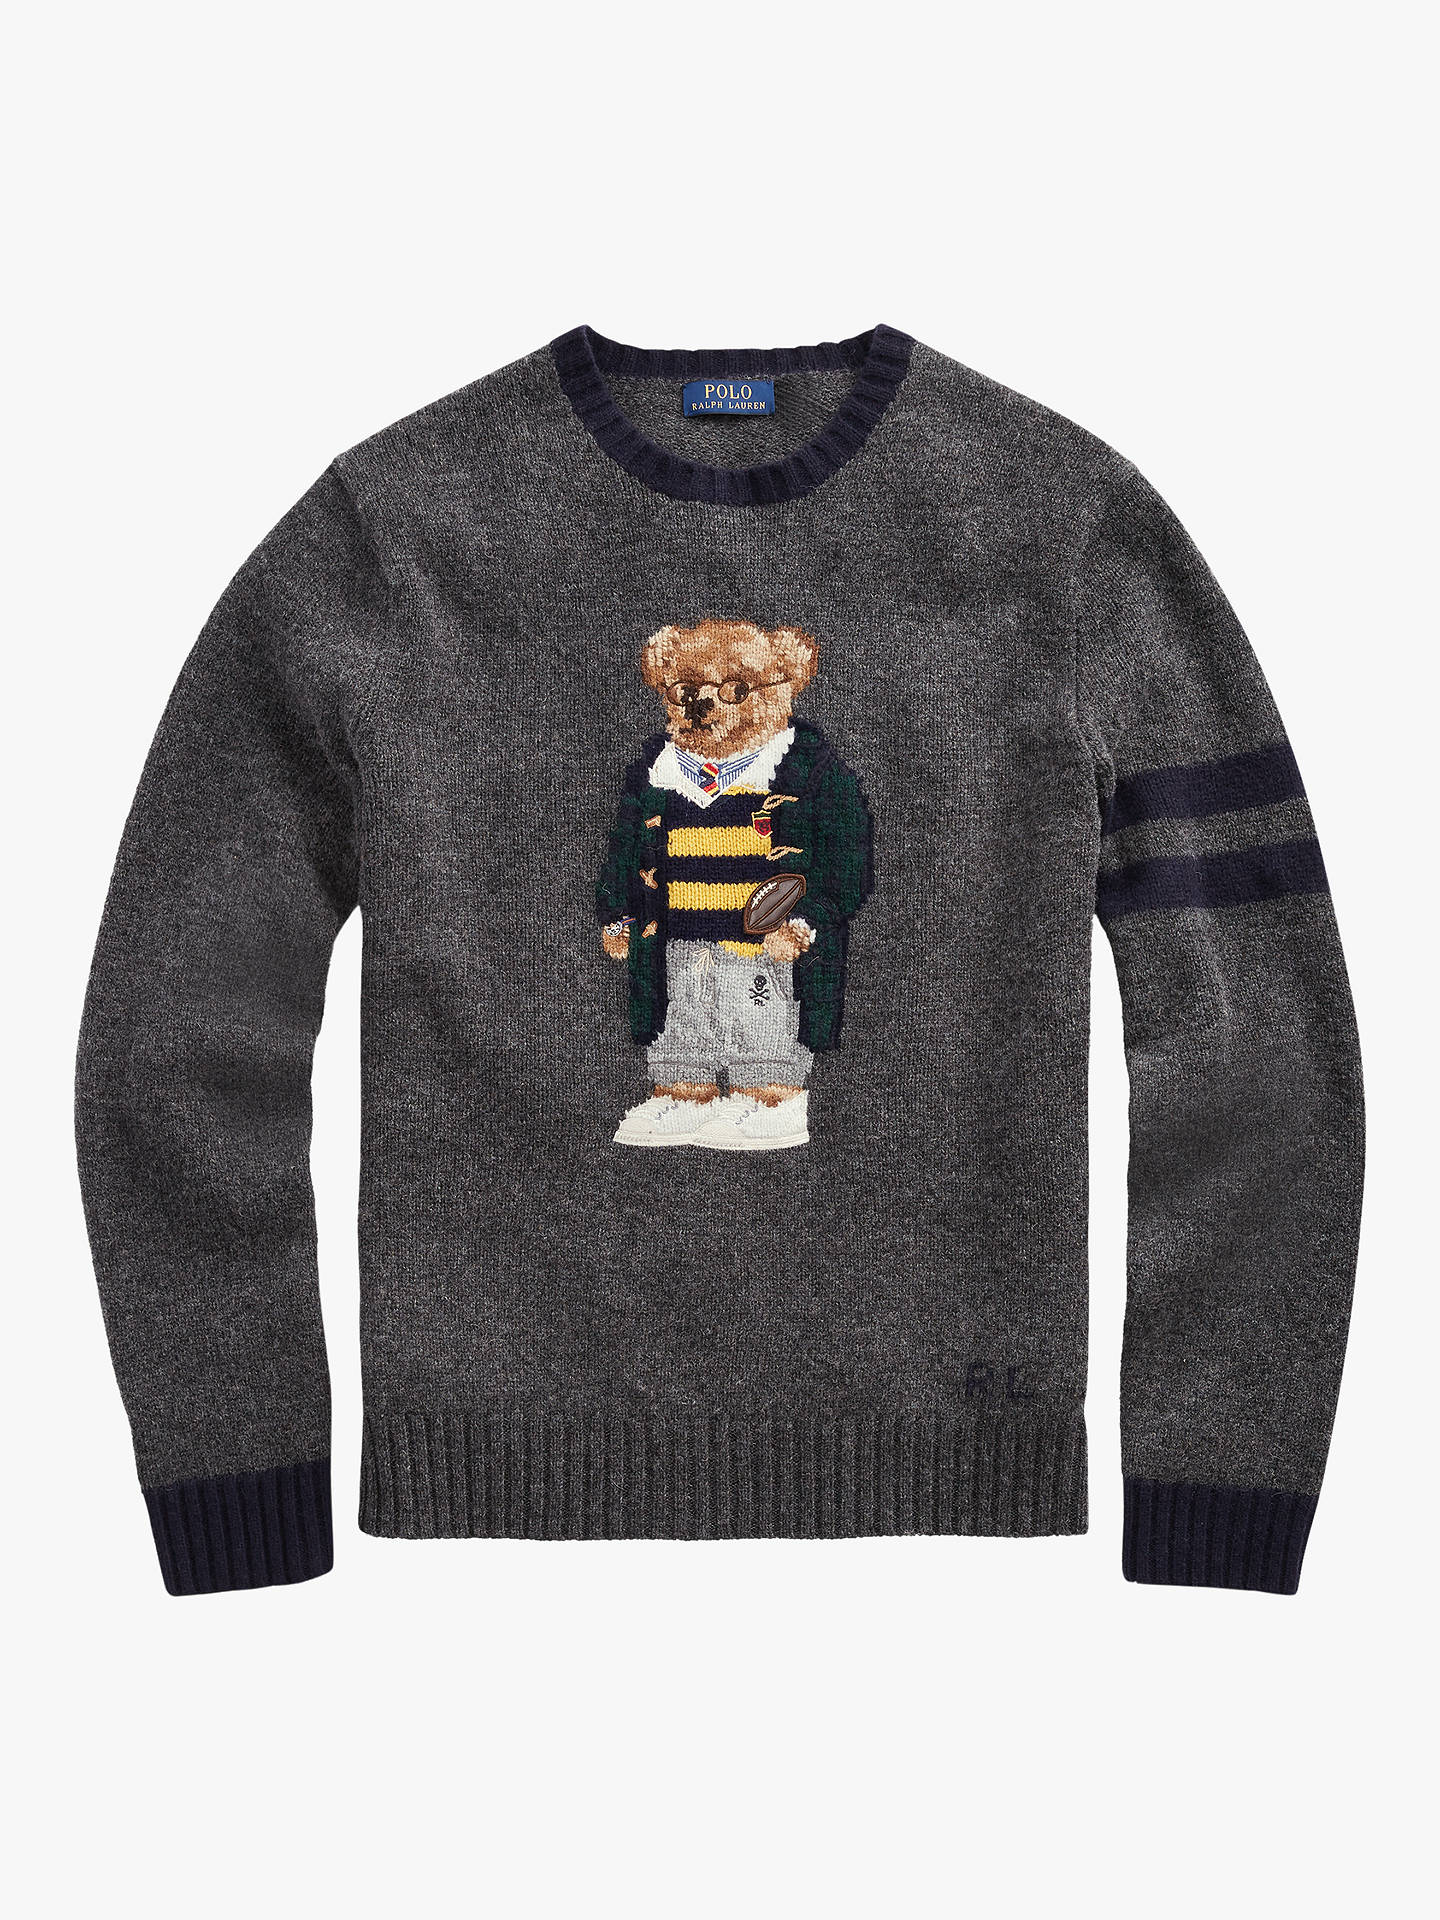 BuyPolo Ralph Lauren Polo Bear Jumper, Grey Heather, S Online at johnlewis.com